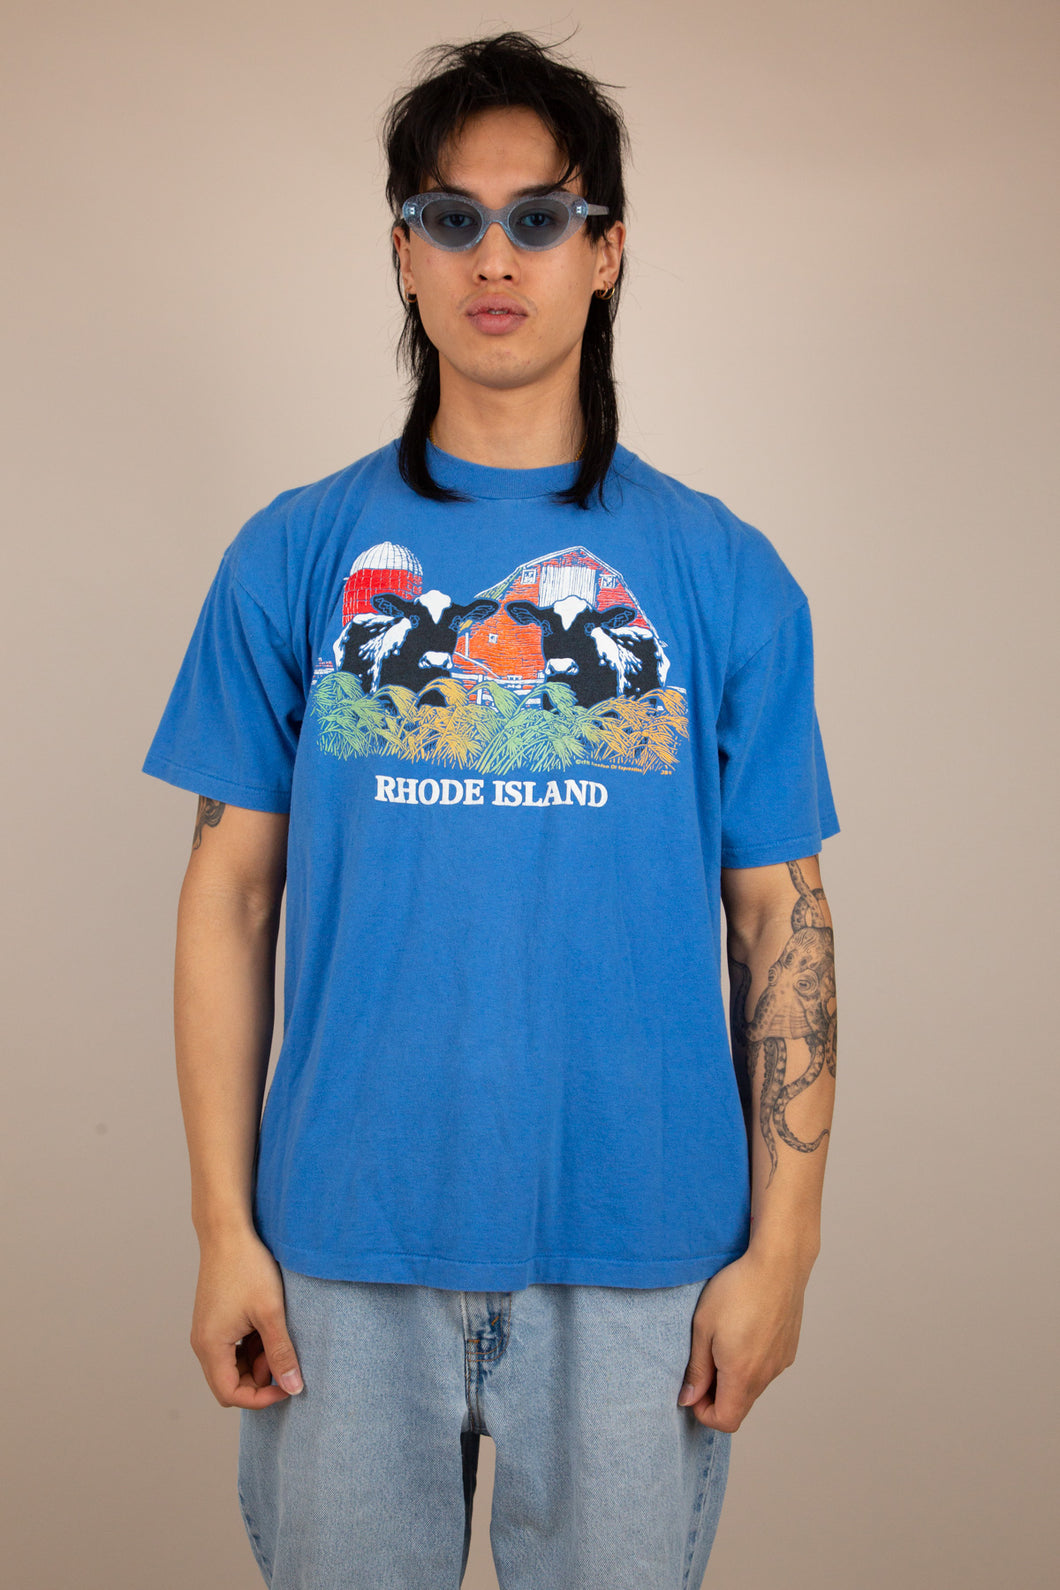 Blue tee with a graphic of some cows on the front and the text